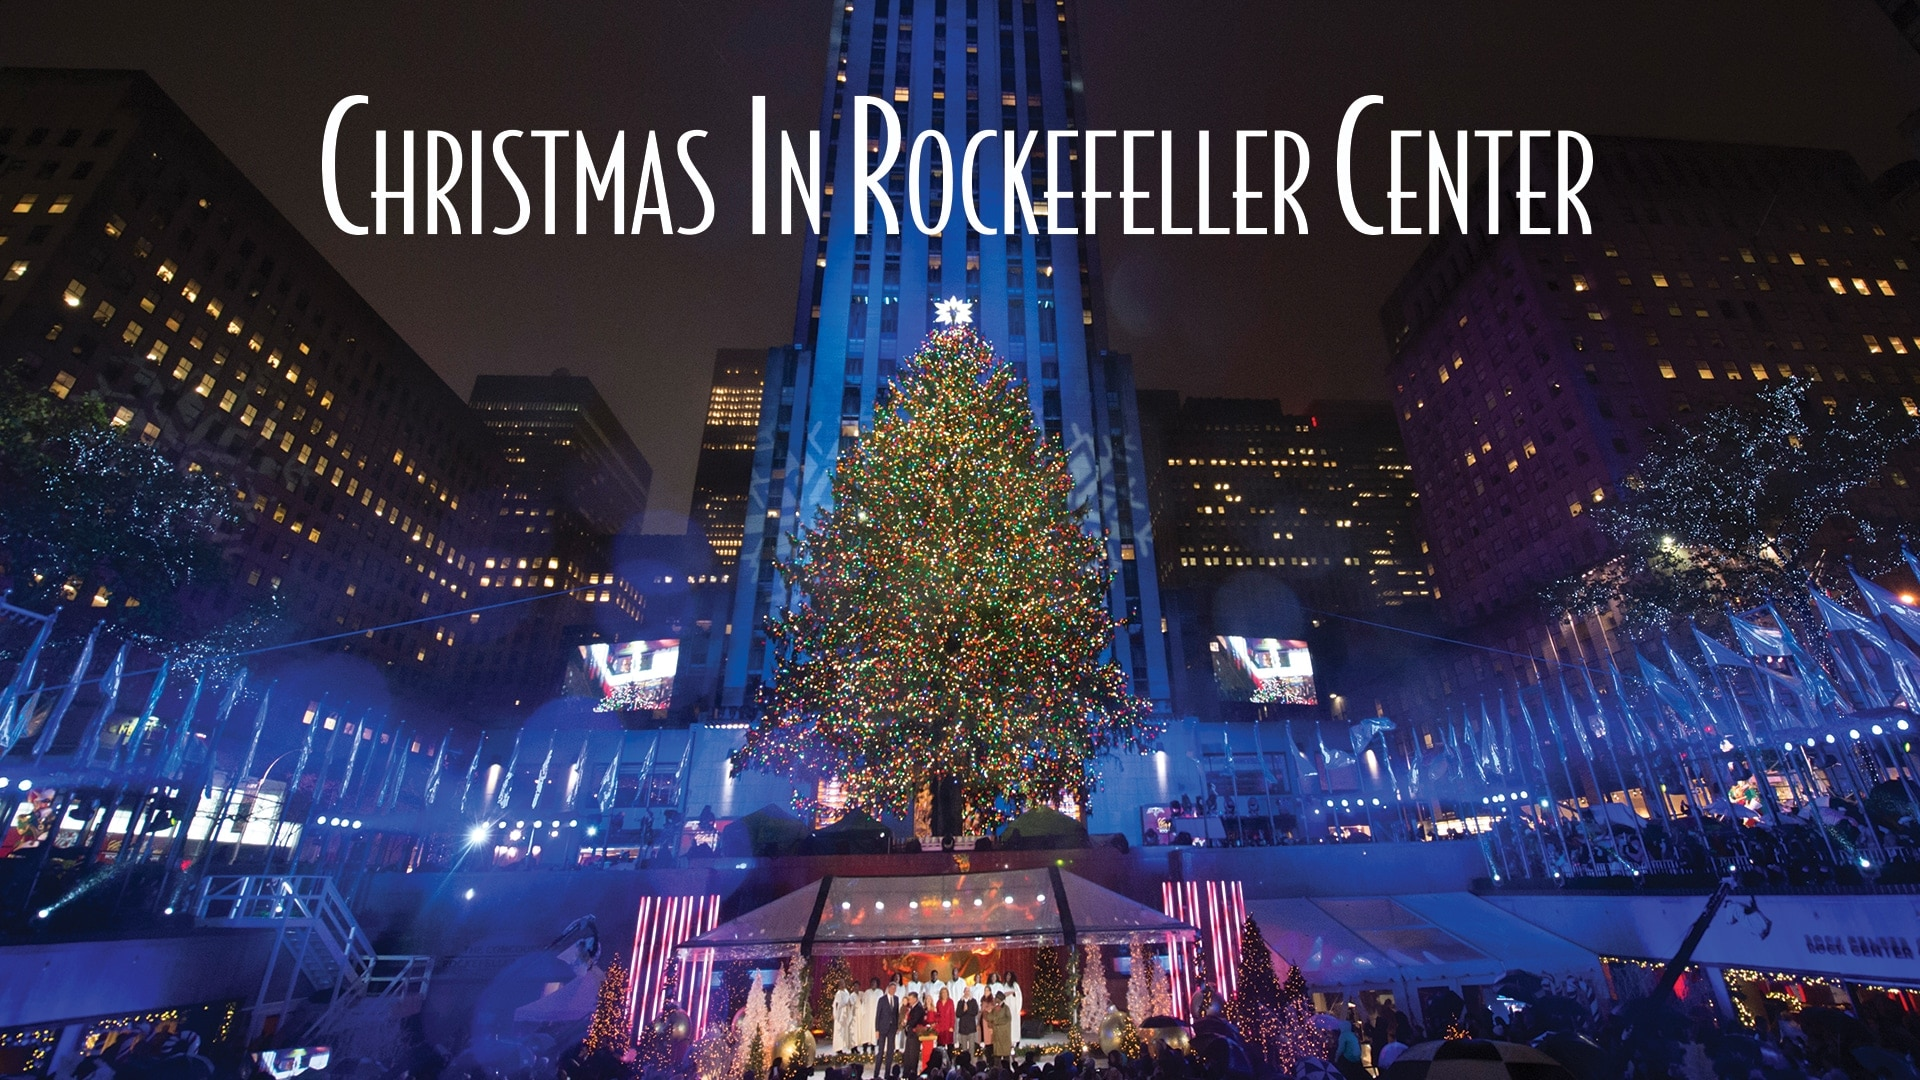 christmas in rockefeller center nbccom